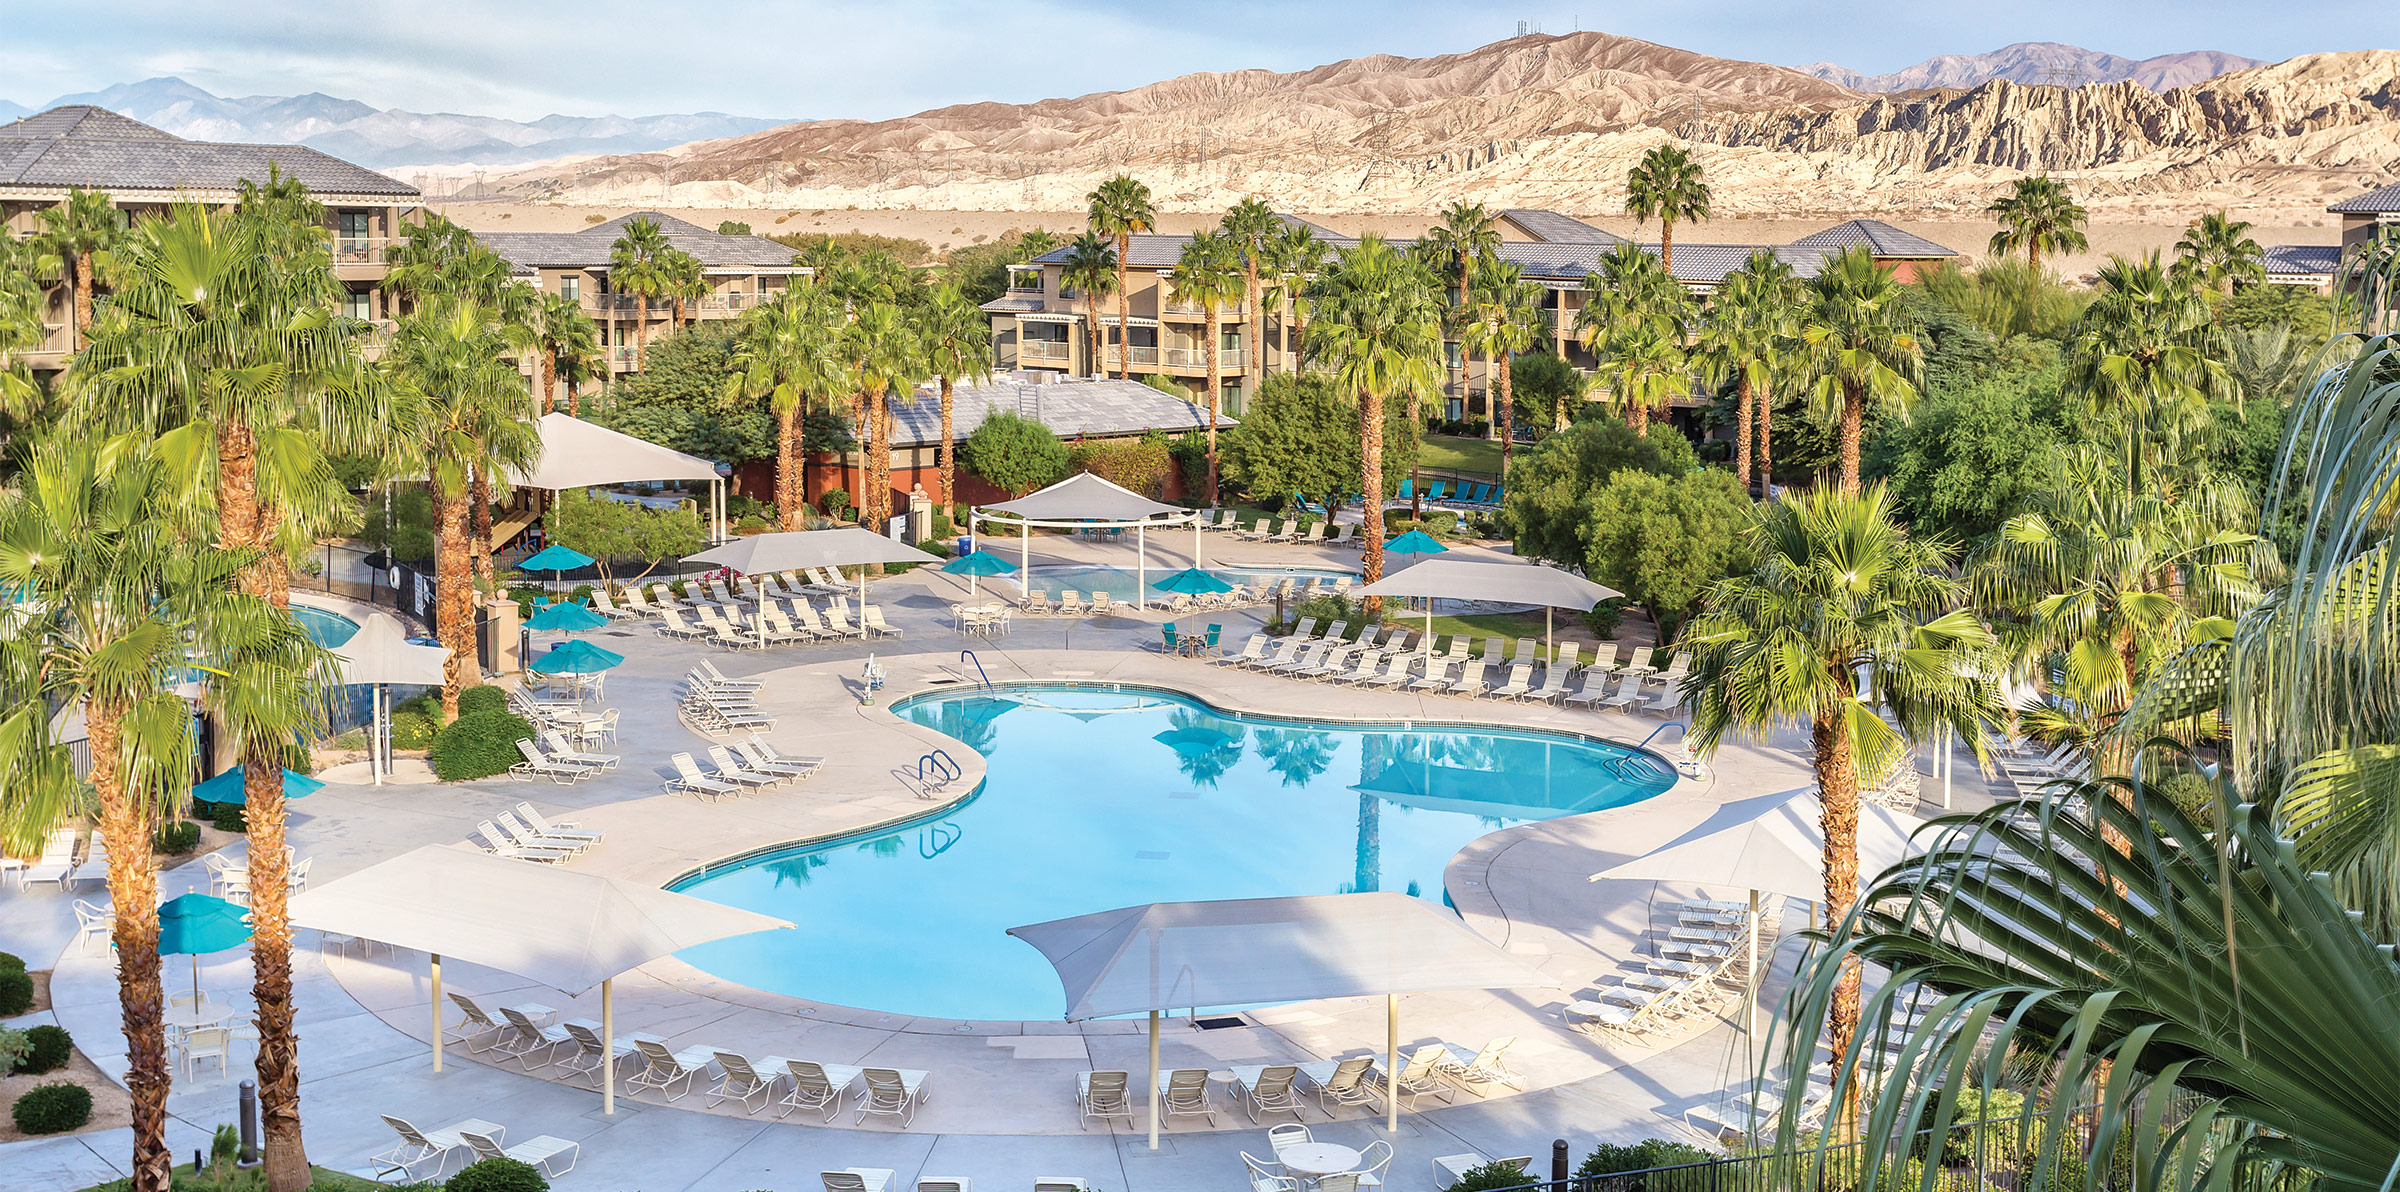 Apartment 1 Bedroom 1 Bath In Indio  CA   Palm Springs  5 miles from COACHELLA photo 20364252